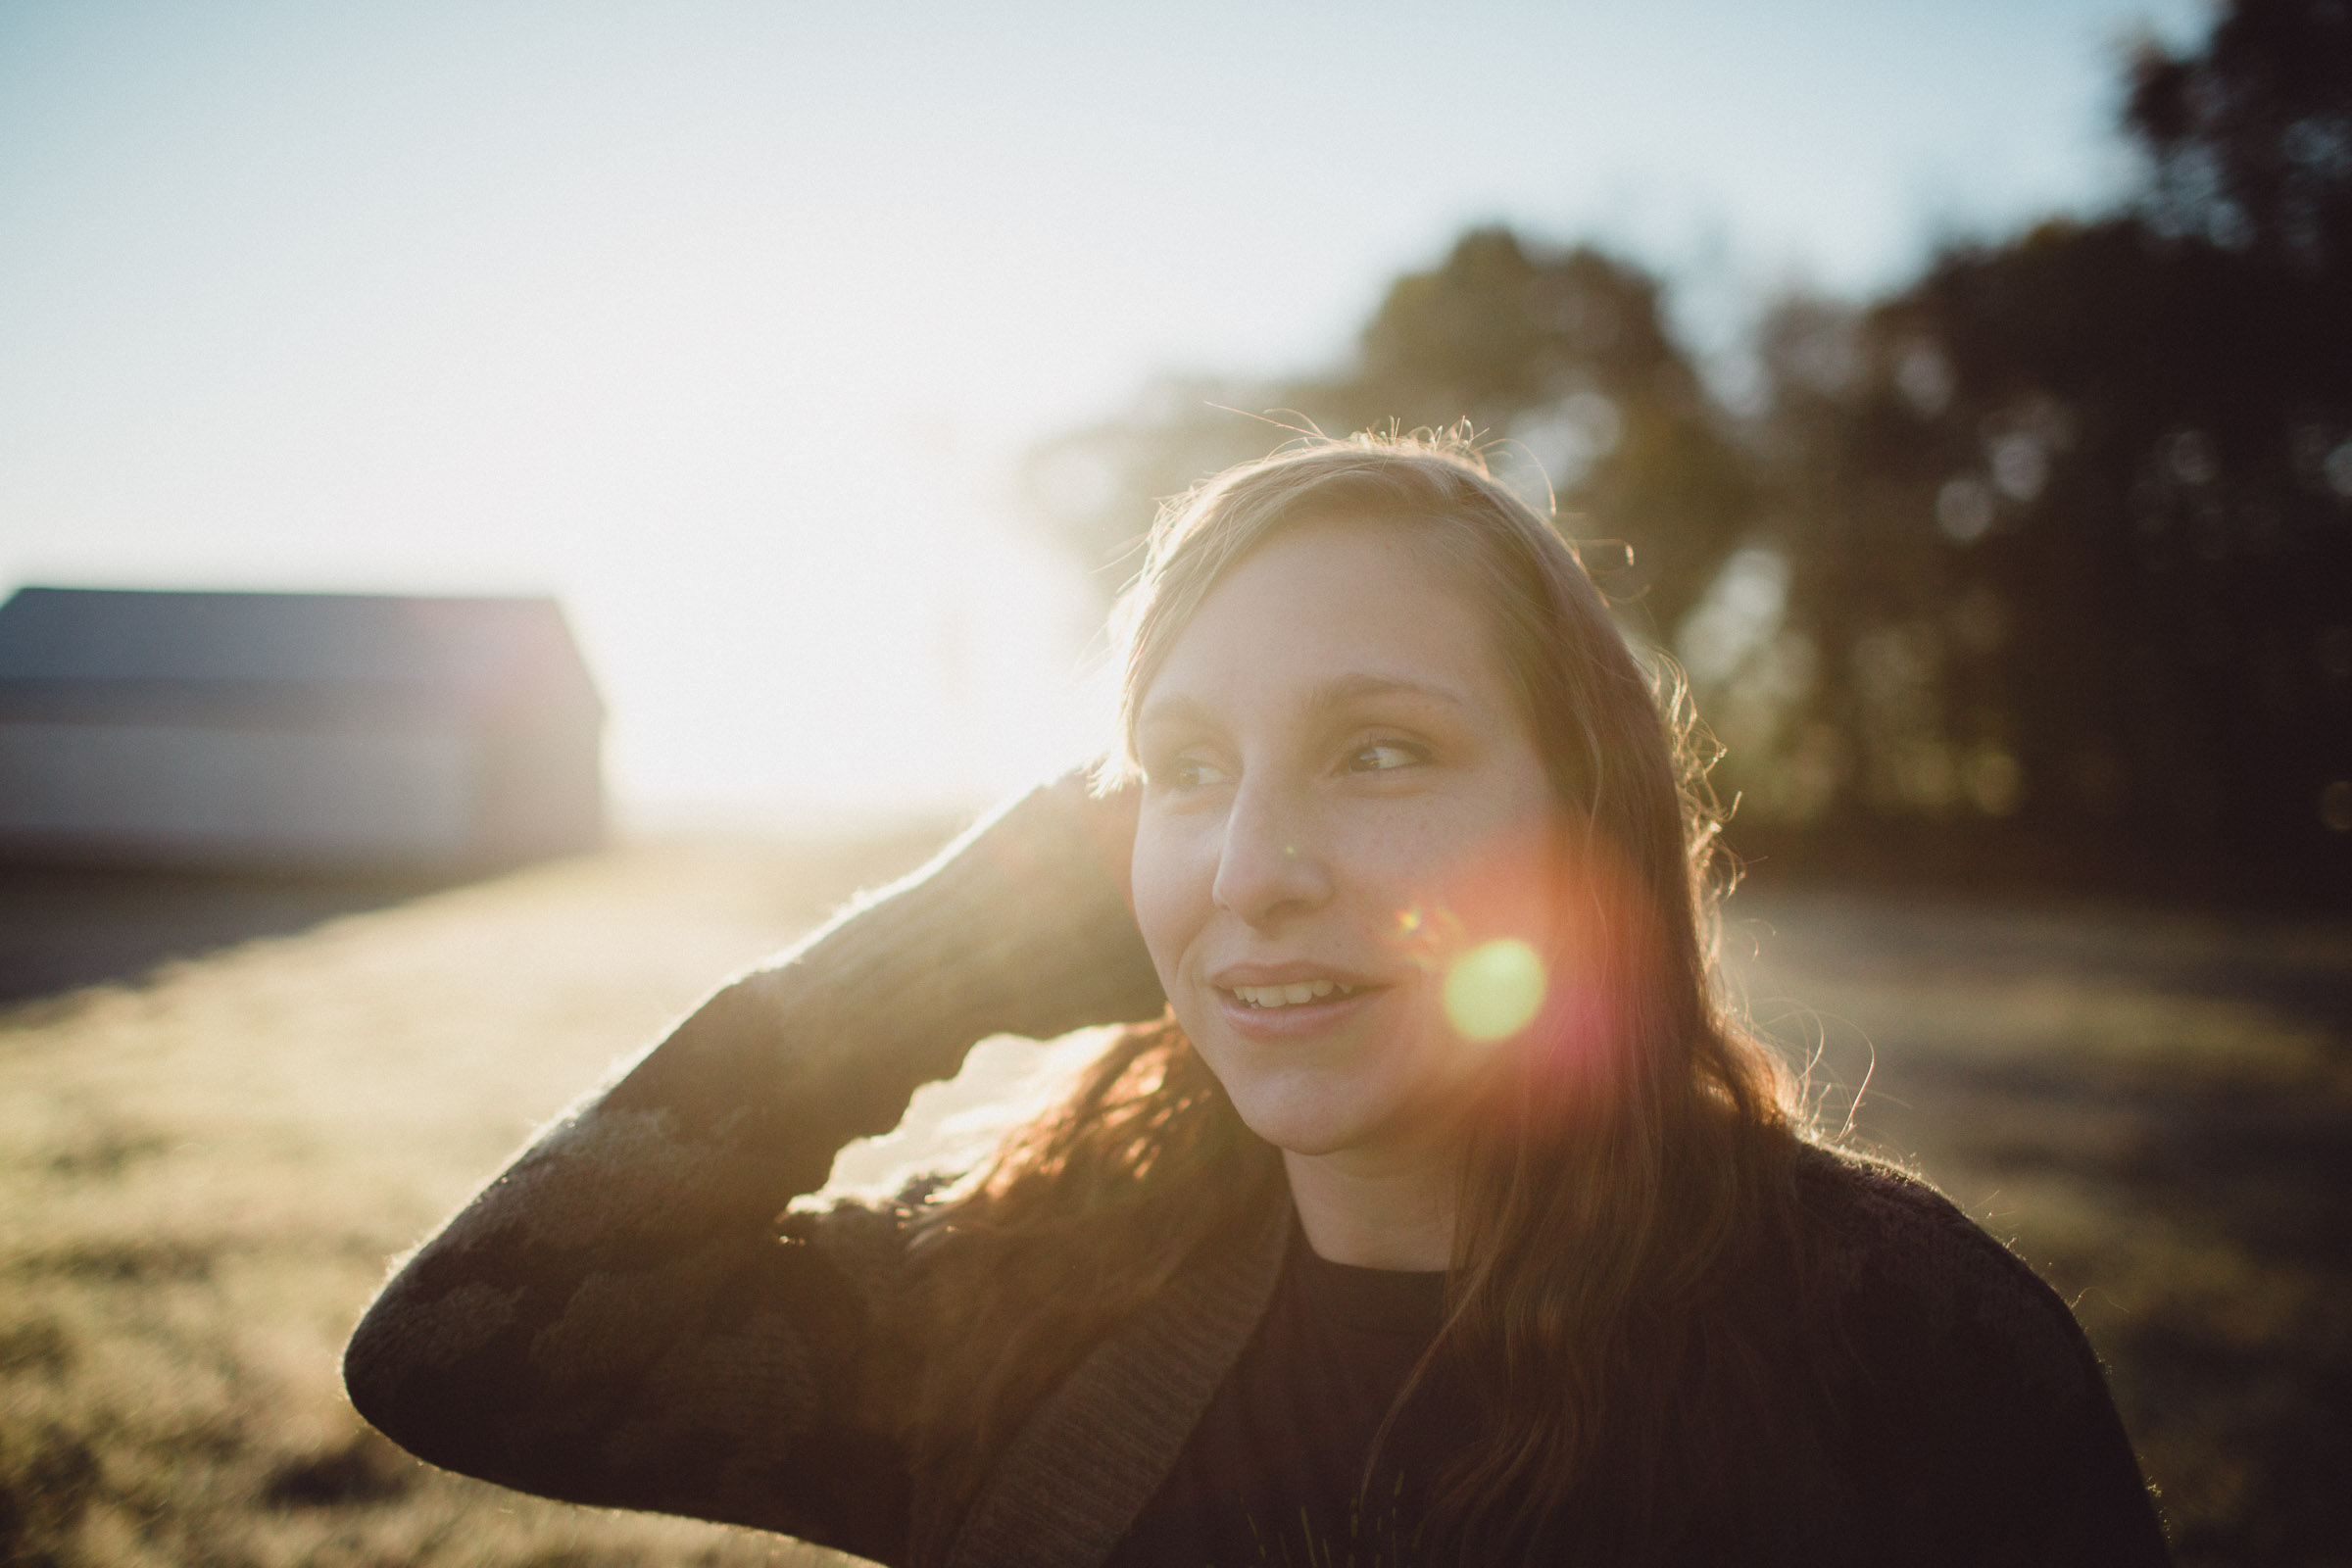 Portrait of girl with backlight and sun flares streaming in